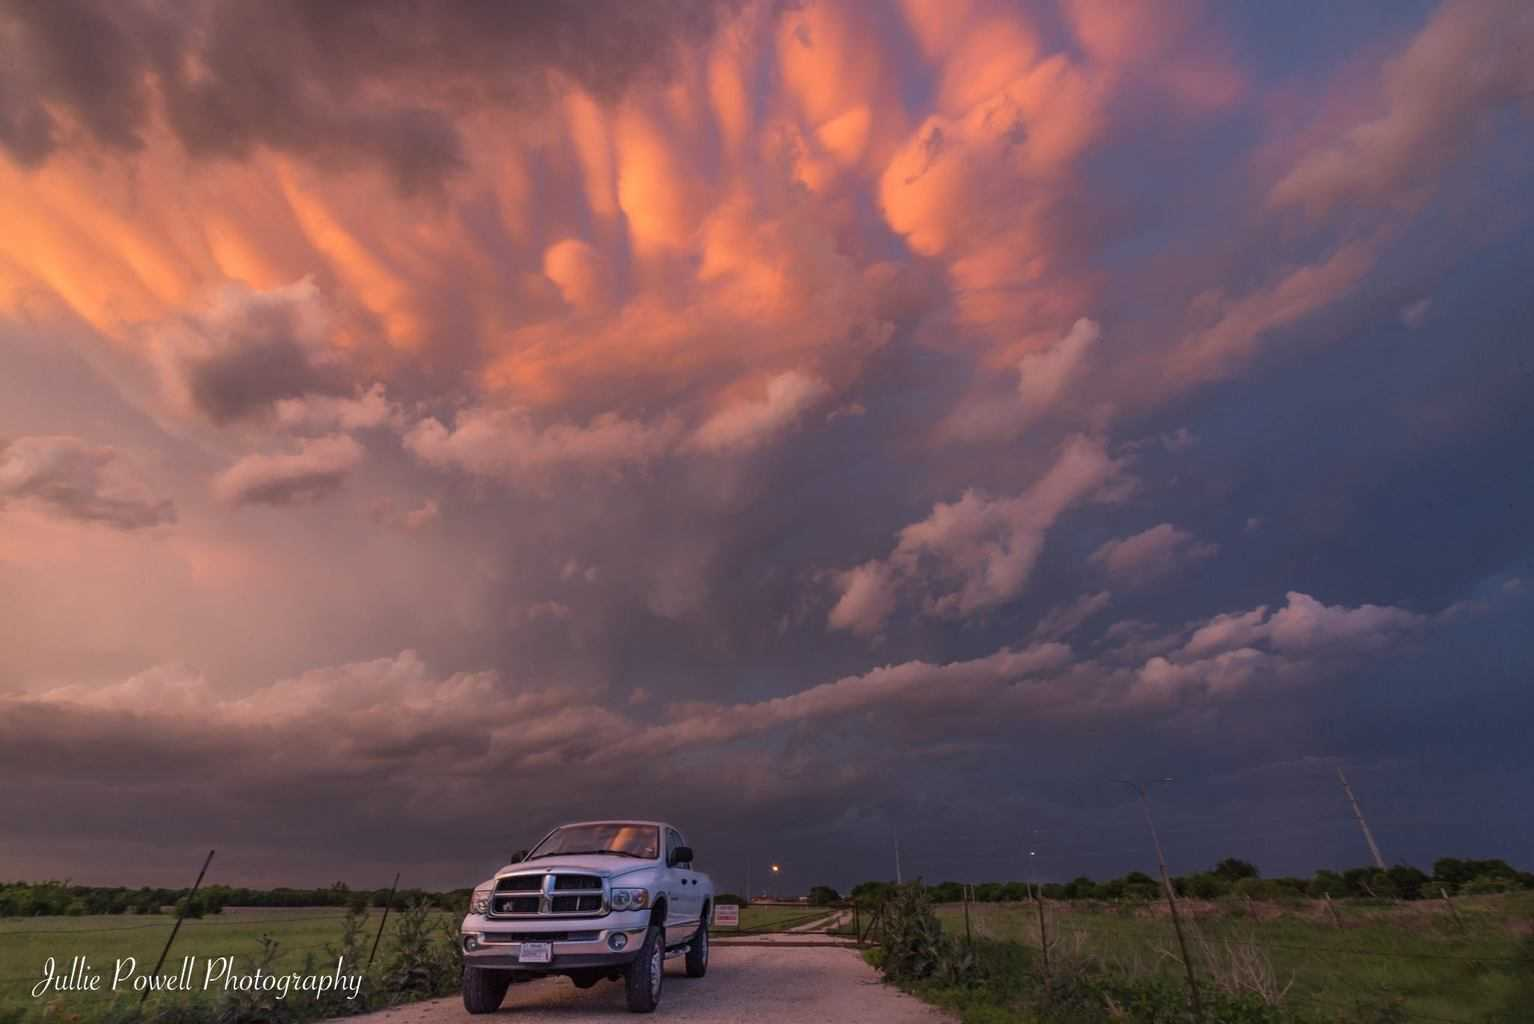 4/21/17 Wasn't a great setup for me, but got some mammatus clouds as the sun was setting! Haslet, Tx